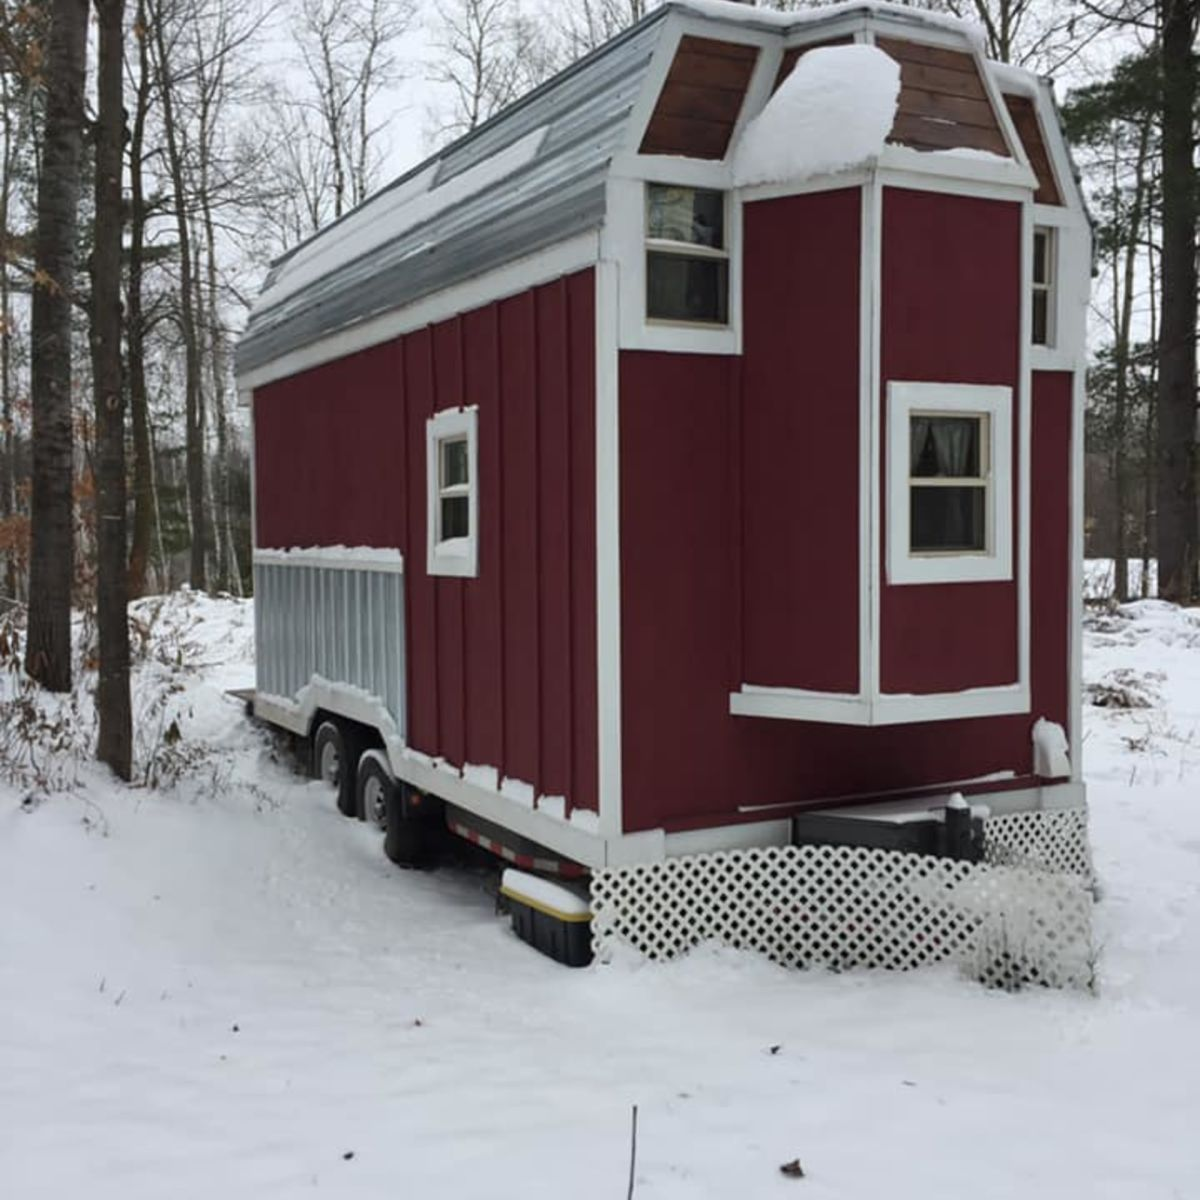 Cozy 8x20 Tiny Home On Wheels Tiny House For Sale In Cumberland Wisconsin Tiny House Listings